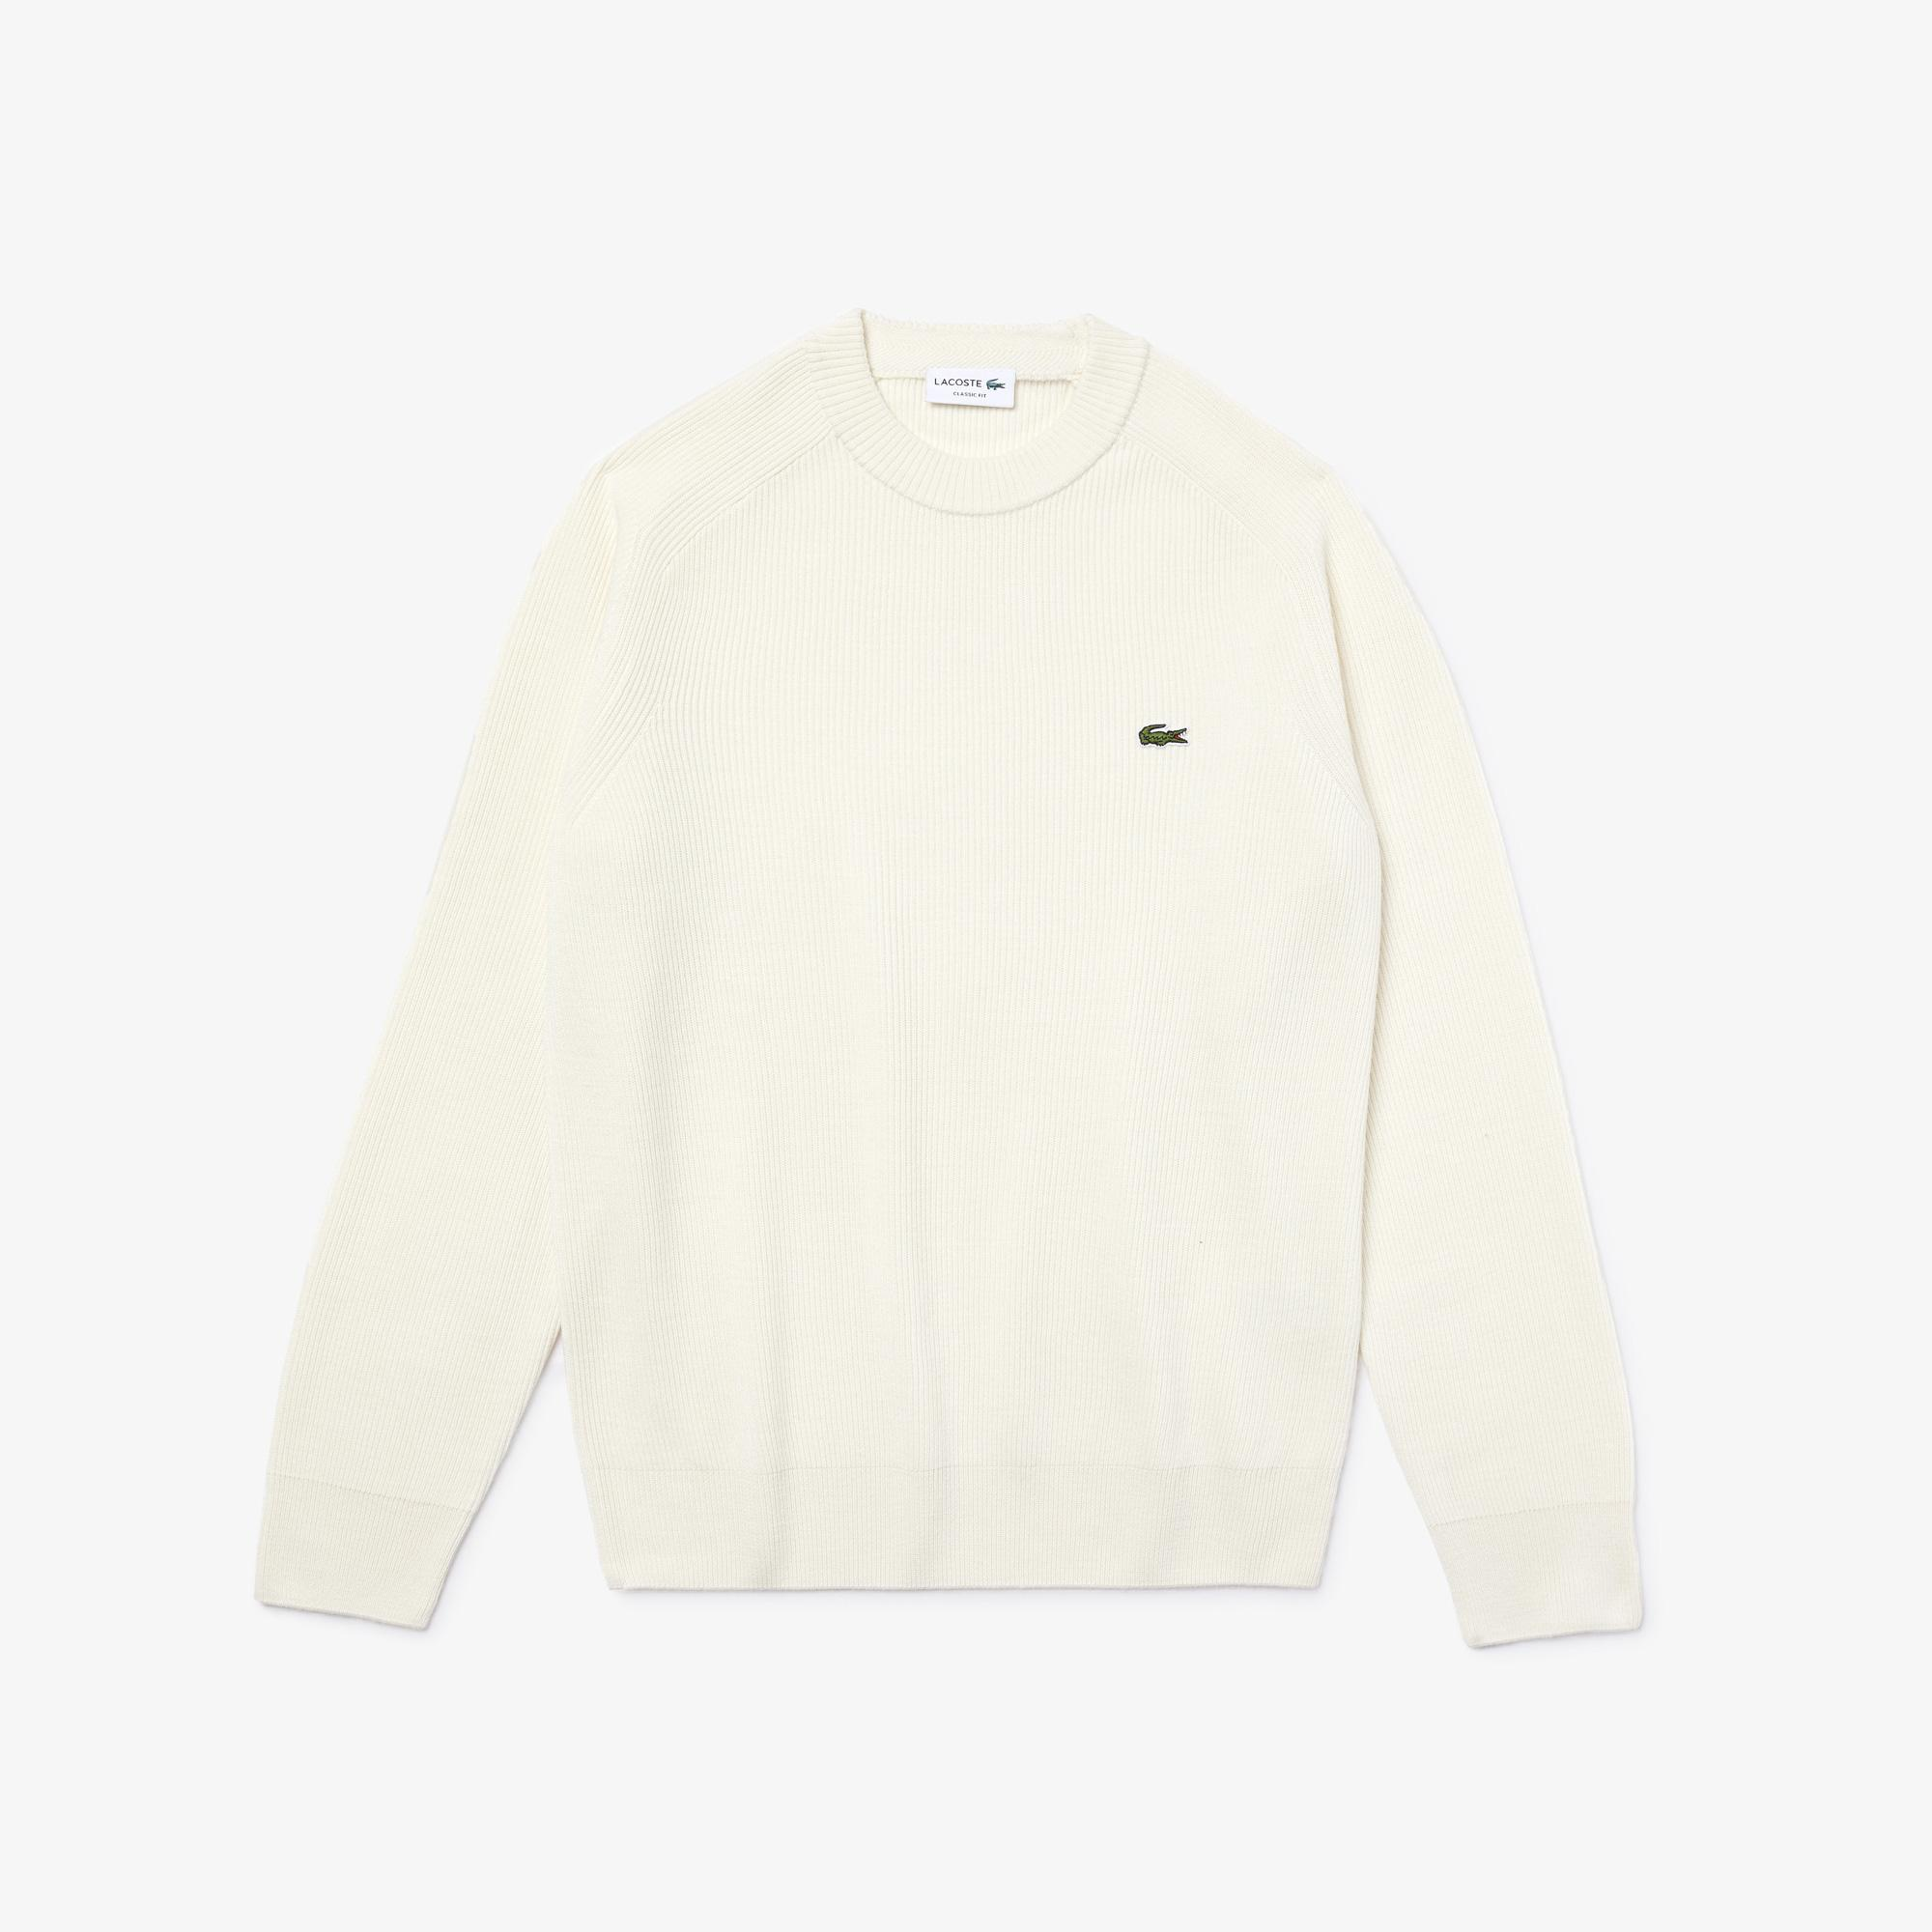 Lacoste Men's Crew Neck Ribbed Wool Blend Sweater